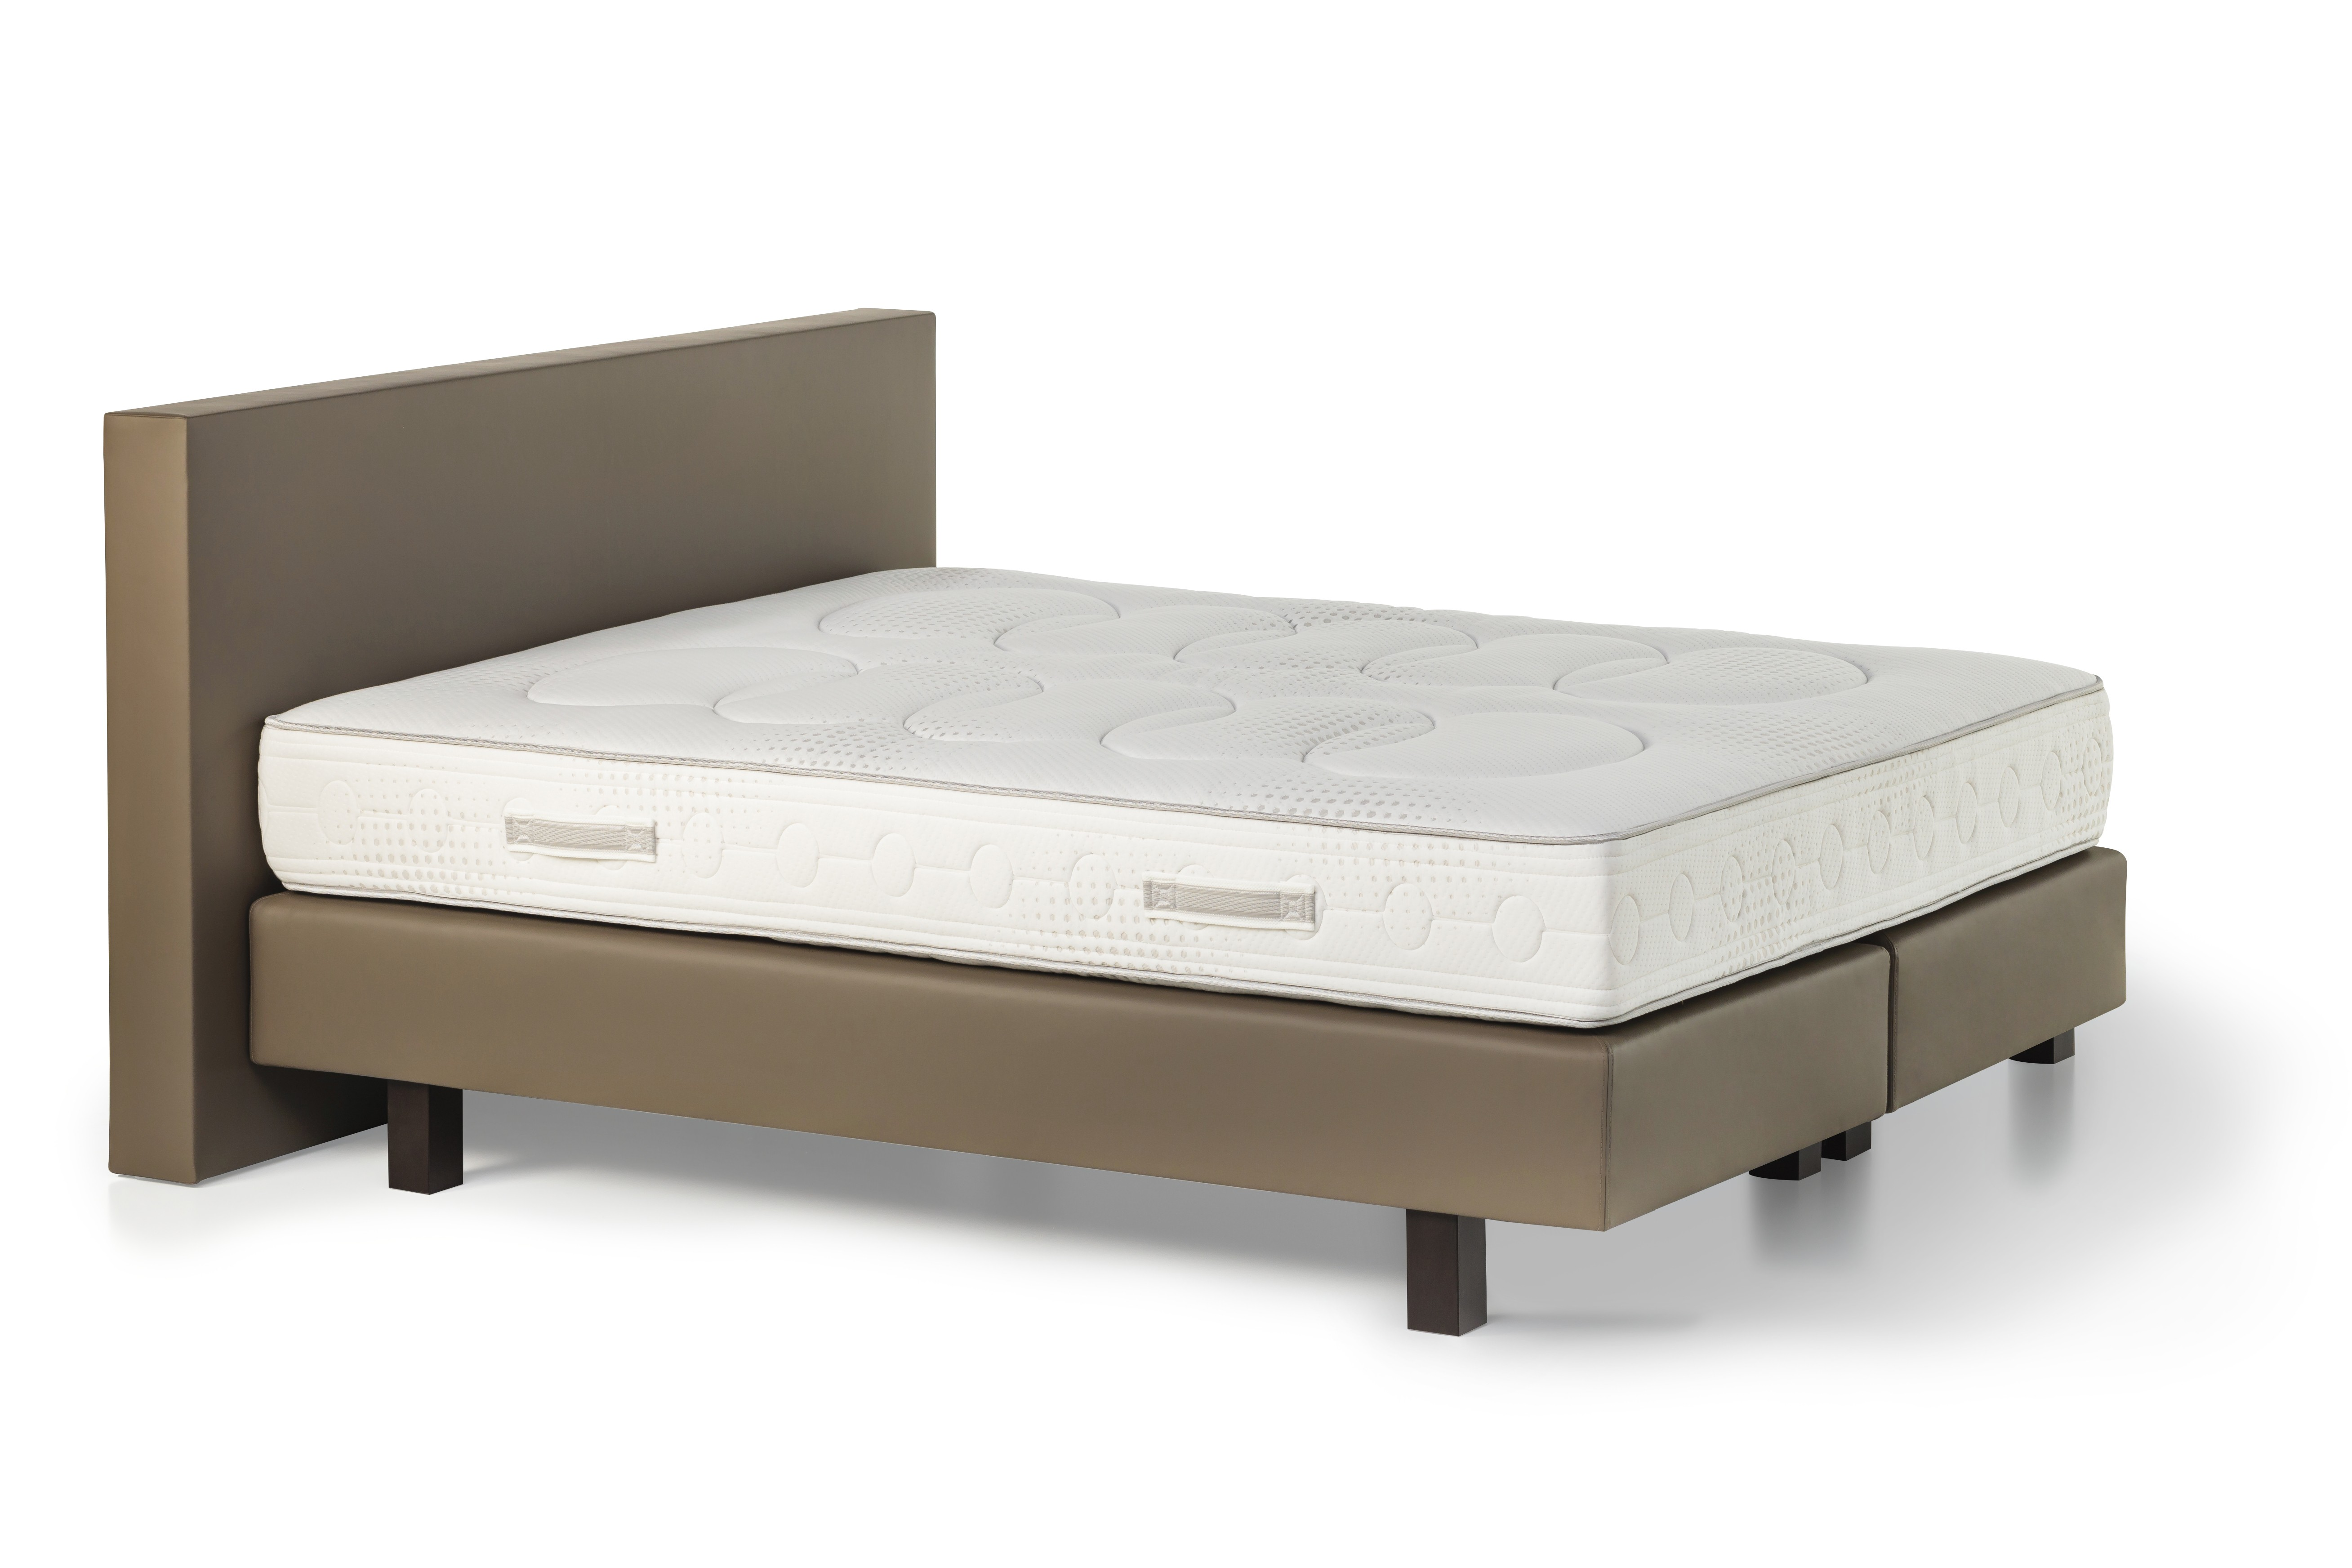 boxspring en ressorts bonnell de la marque bultex 6 couleurs possibles. Black Bedroom Furniture Sets. Home Design Ideas